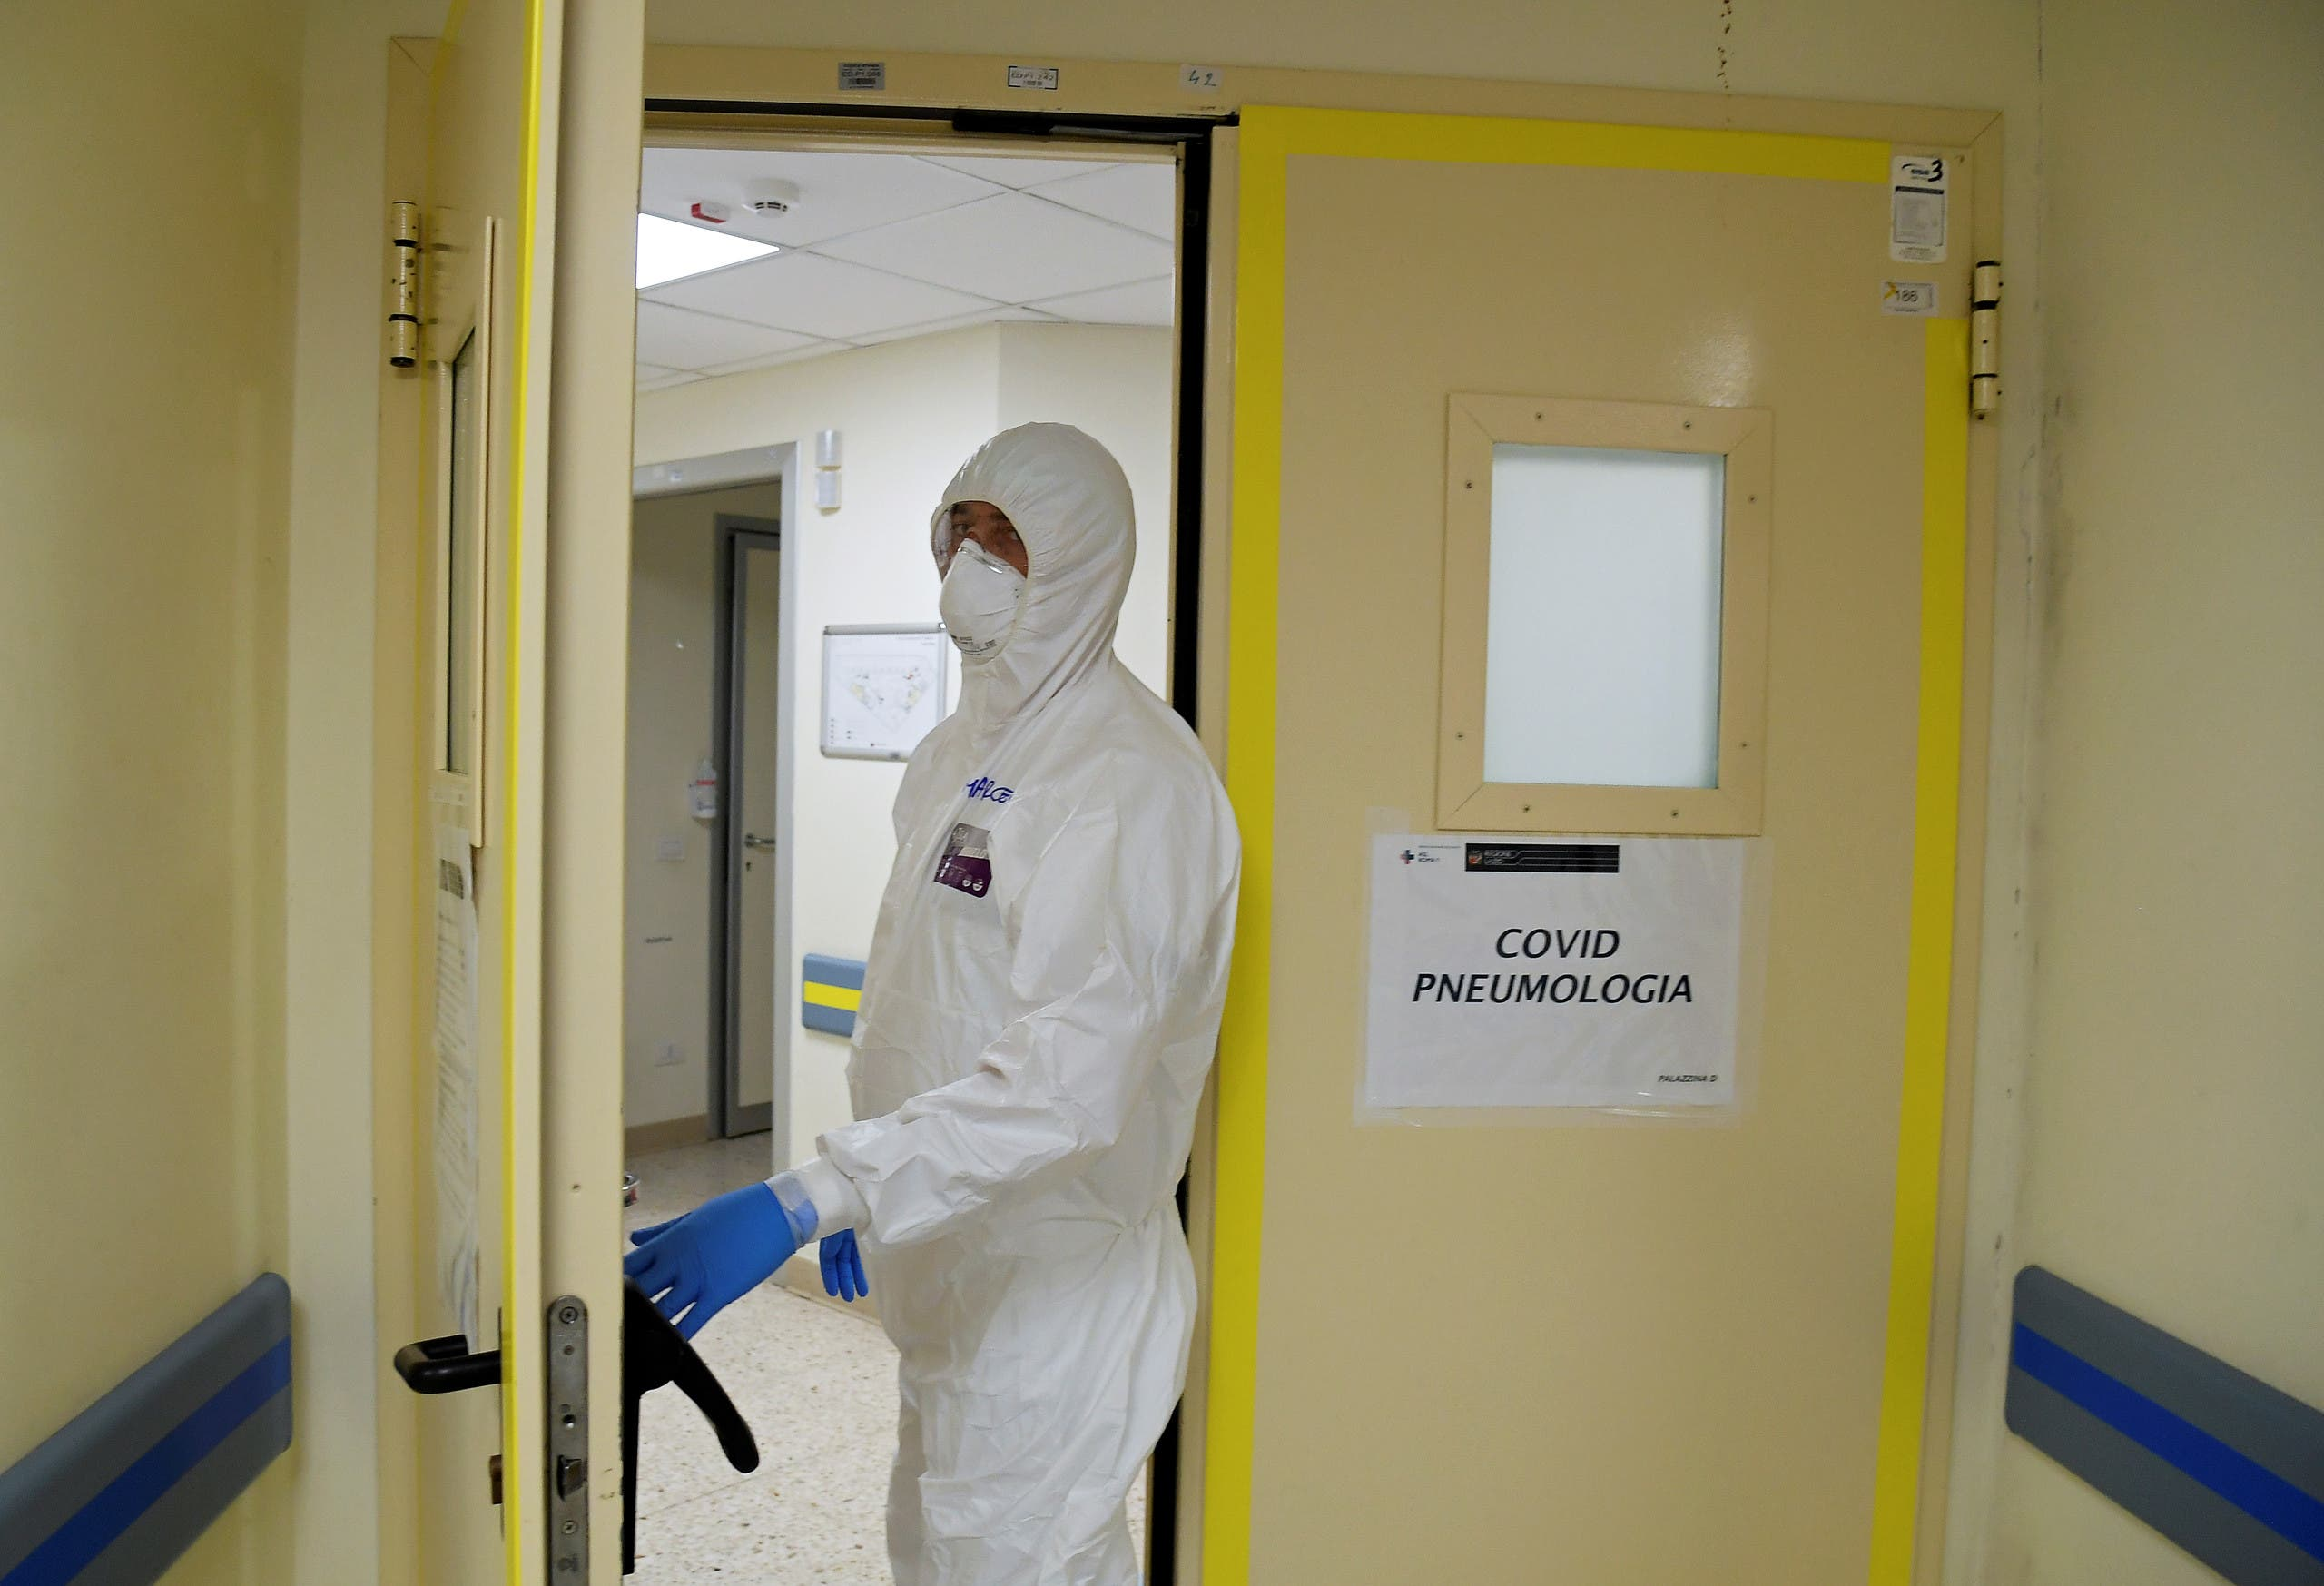 A member of the medical staff enters the coronavirus disease (COVID-19) unit at San Filippo Neri hospital in Rome, Italy April 9, 2020. (Reuters)